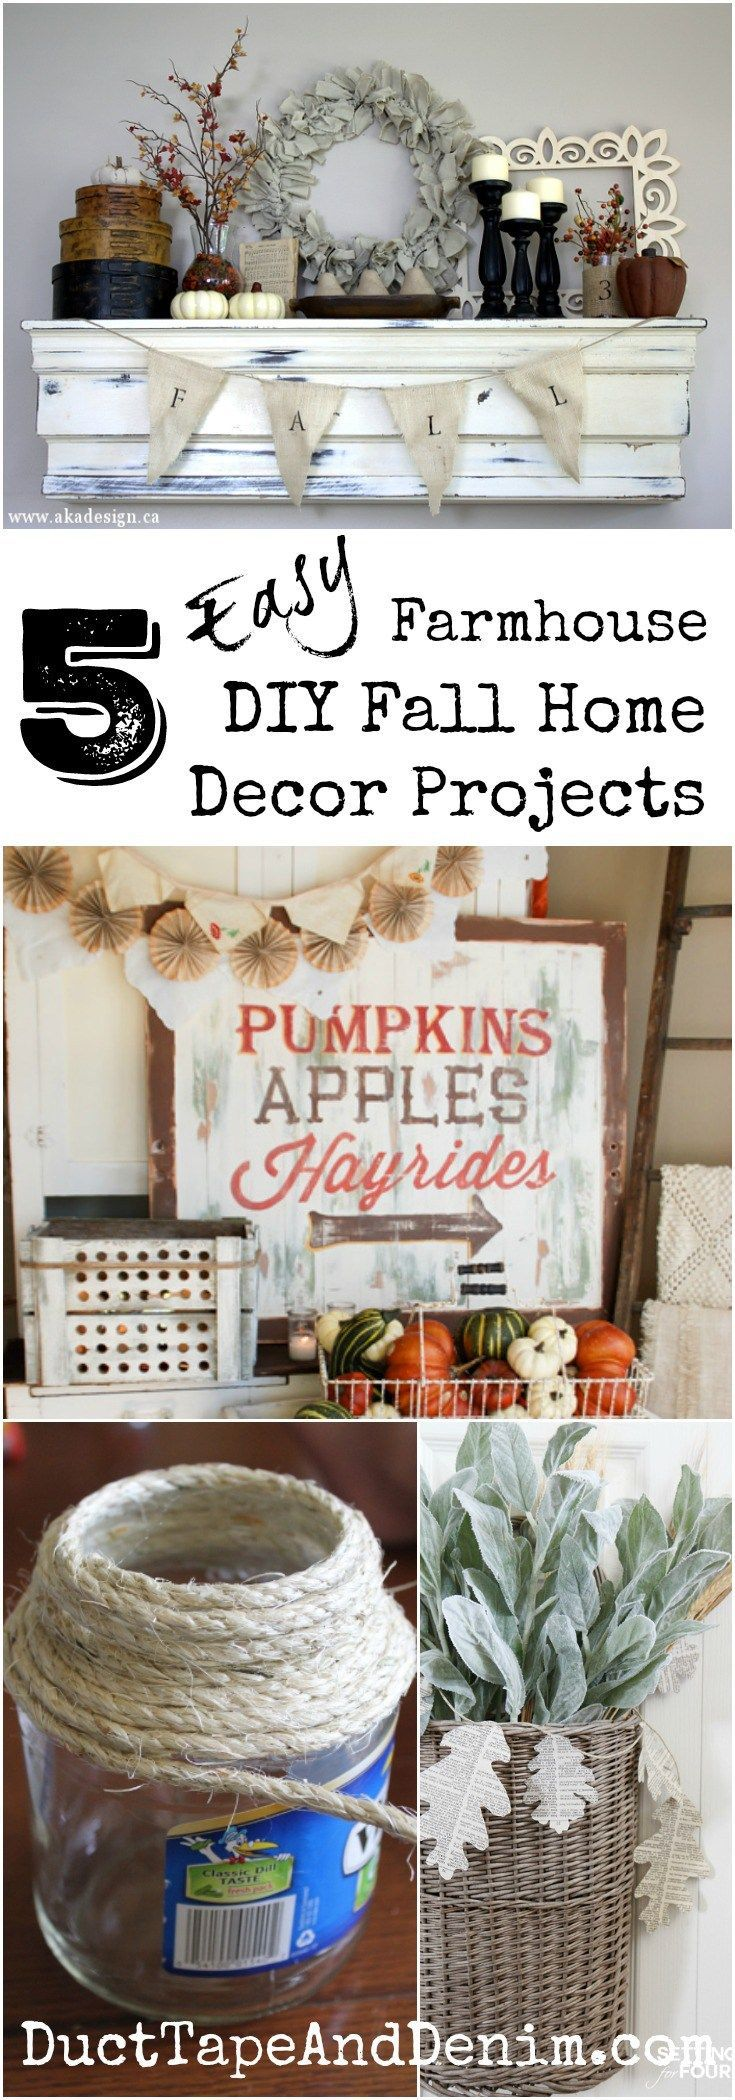 5 easy farmhouse DIY fall home decor projects. See more on http://DuctTapeAndDenim.com